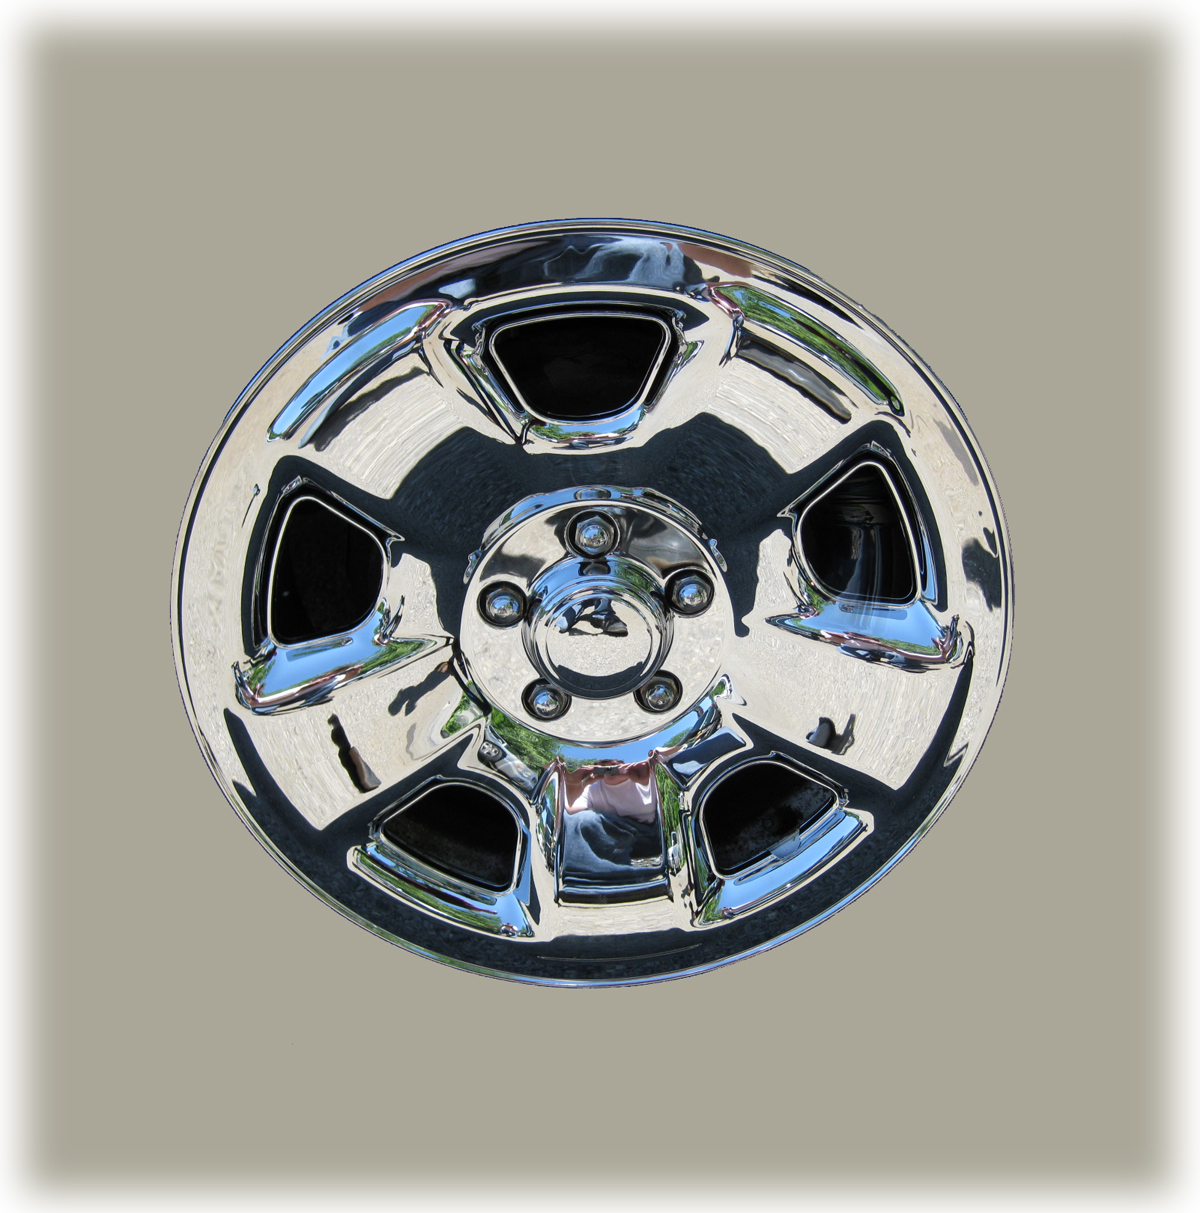 1998 Rav4 Custom >> Subaru Forester 1998, 1999, 2000, 2001, 2002 XL or LX Model Wheel Skins in real chrome at ...